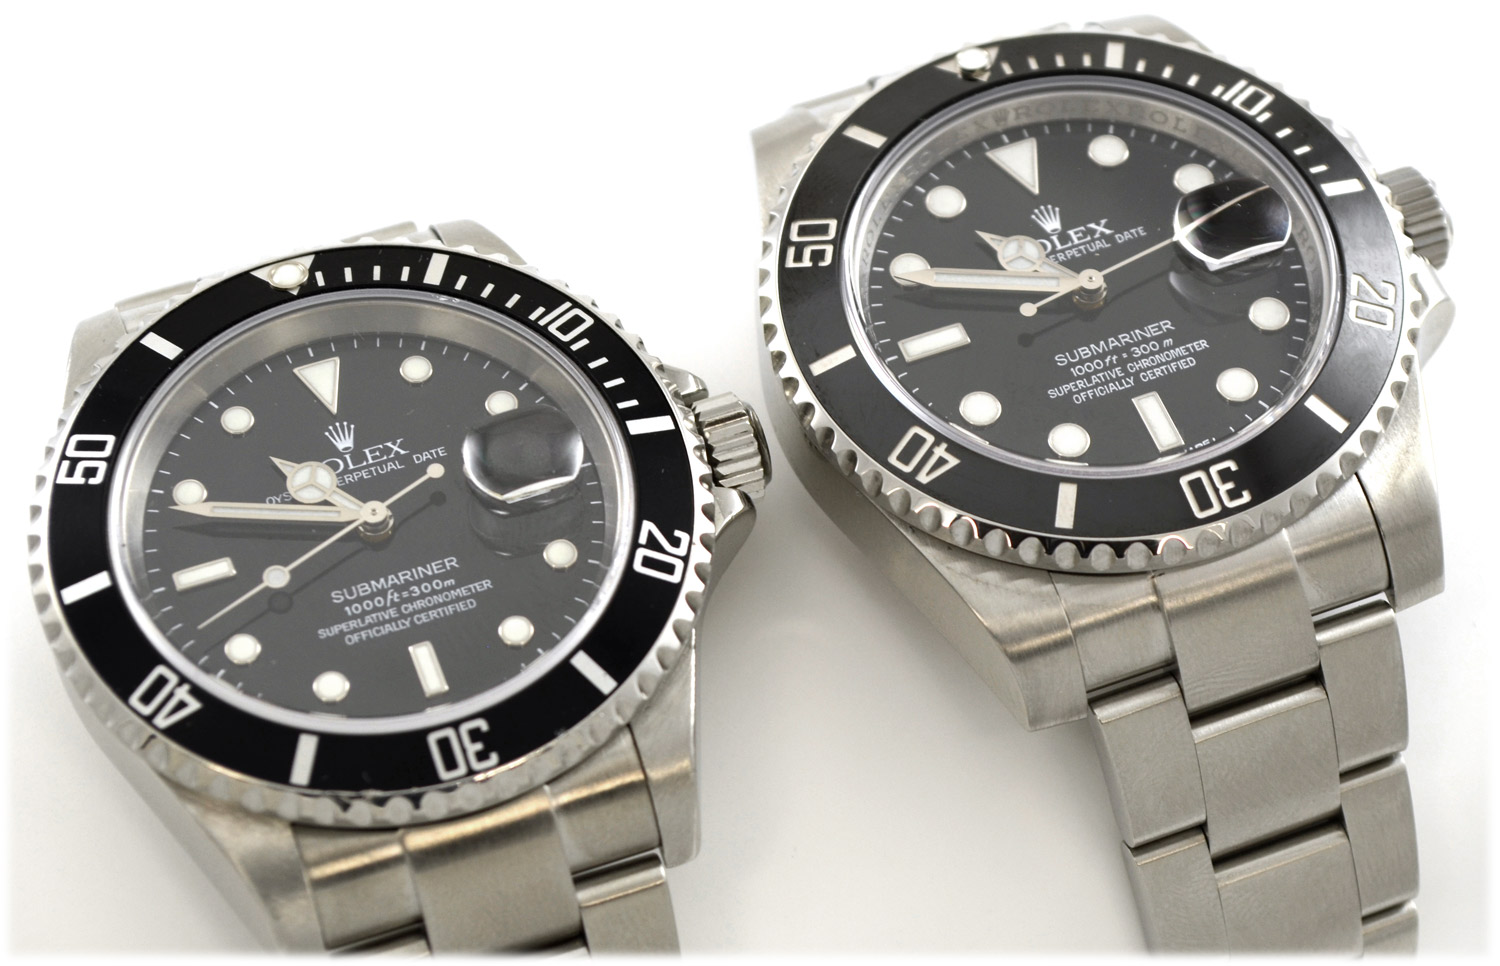 Rolex Submariner 116610 vs 16610 Comparison  Bernard